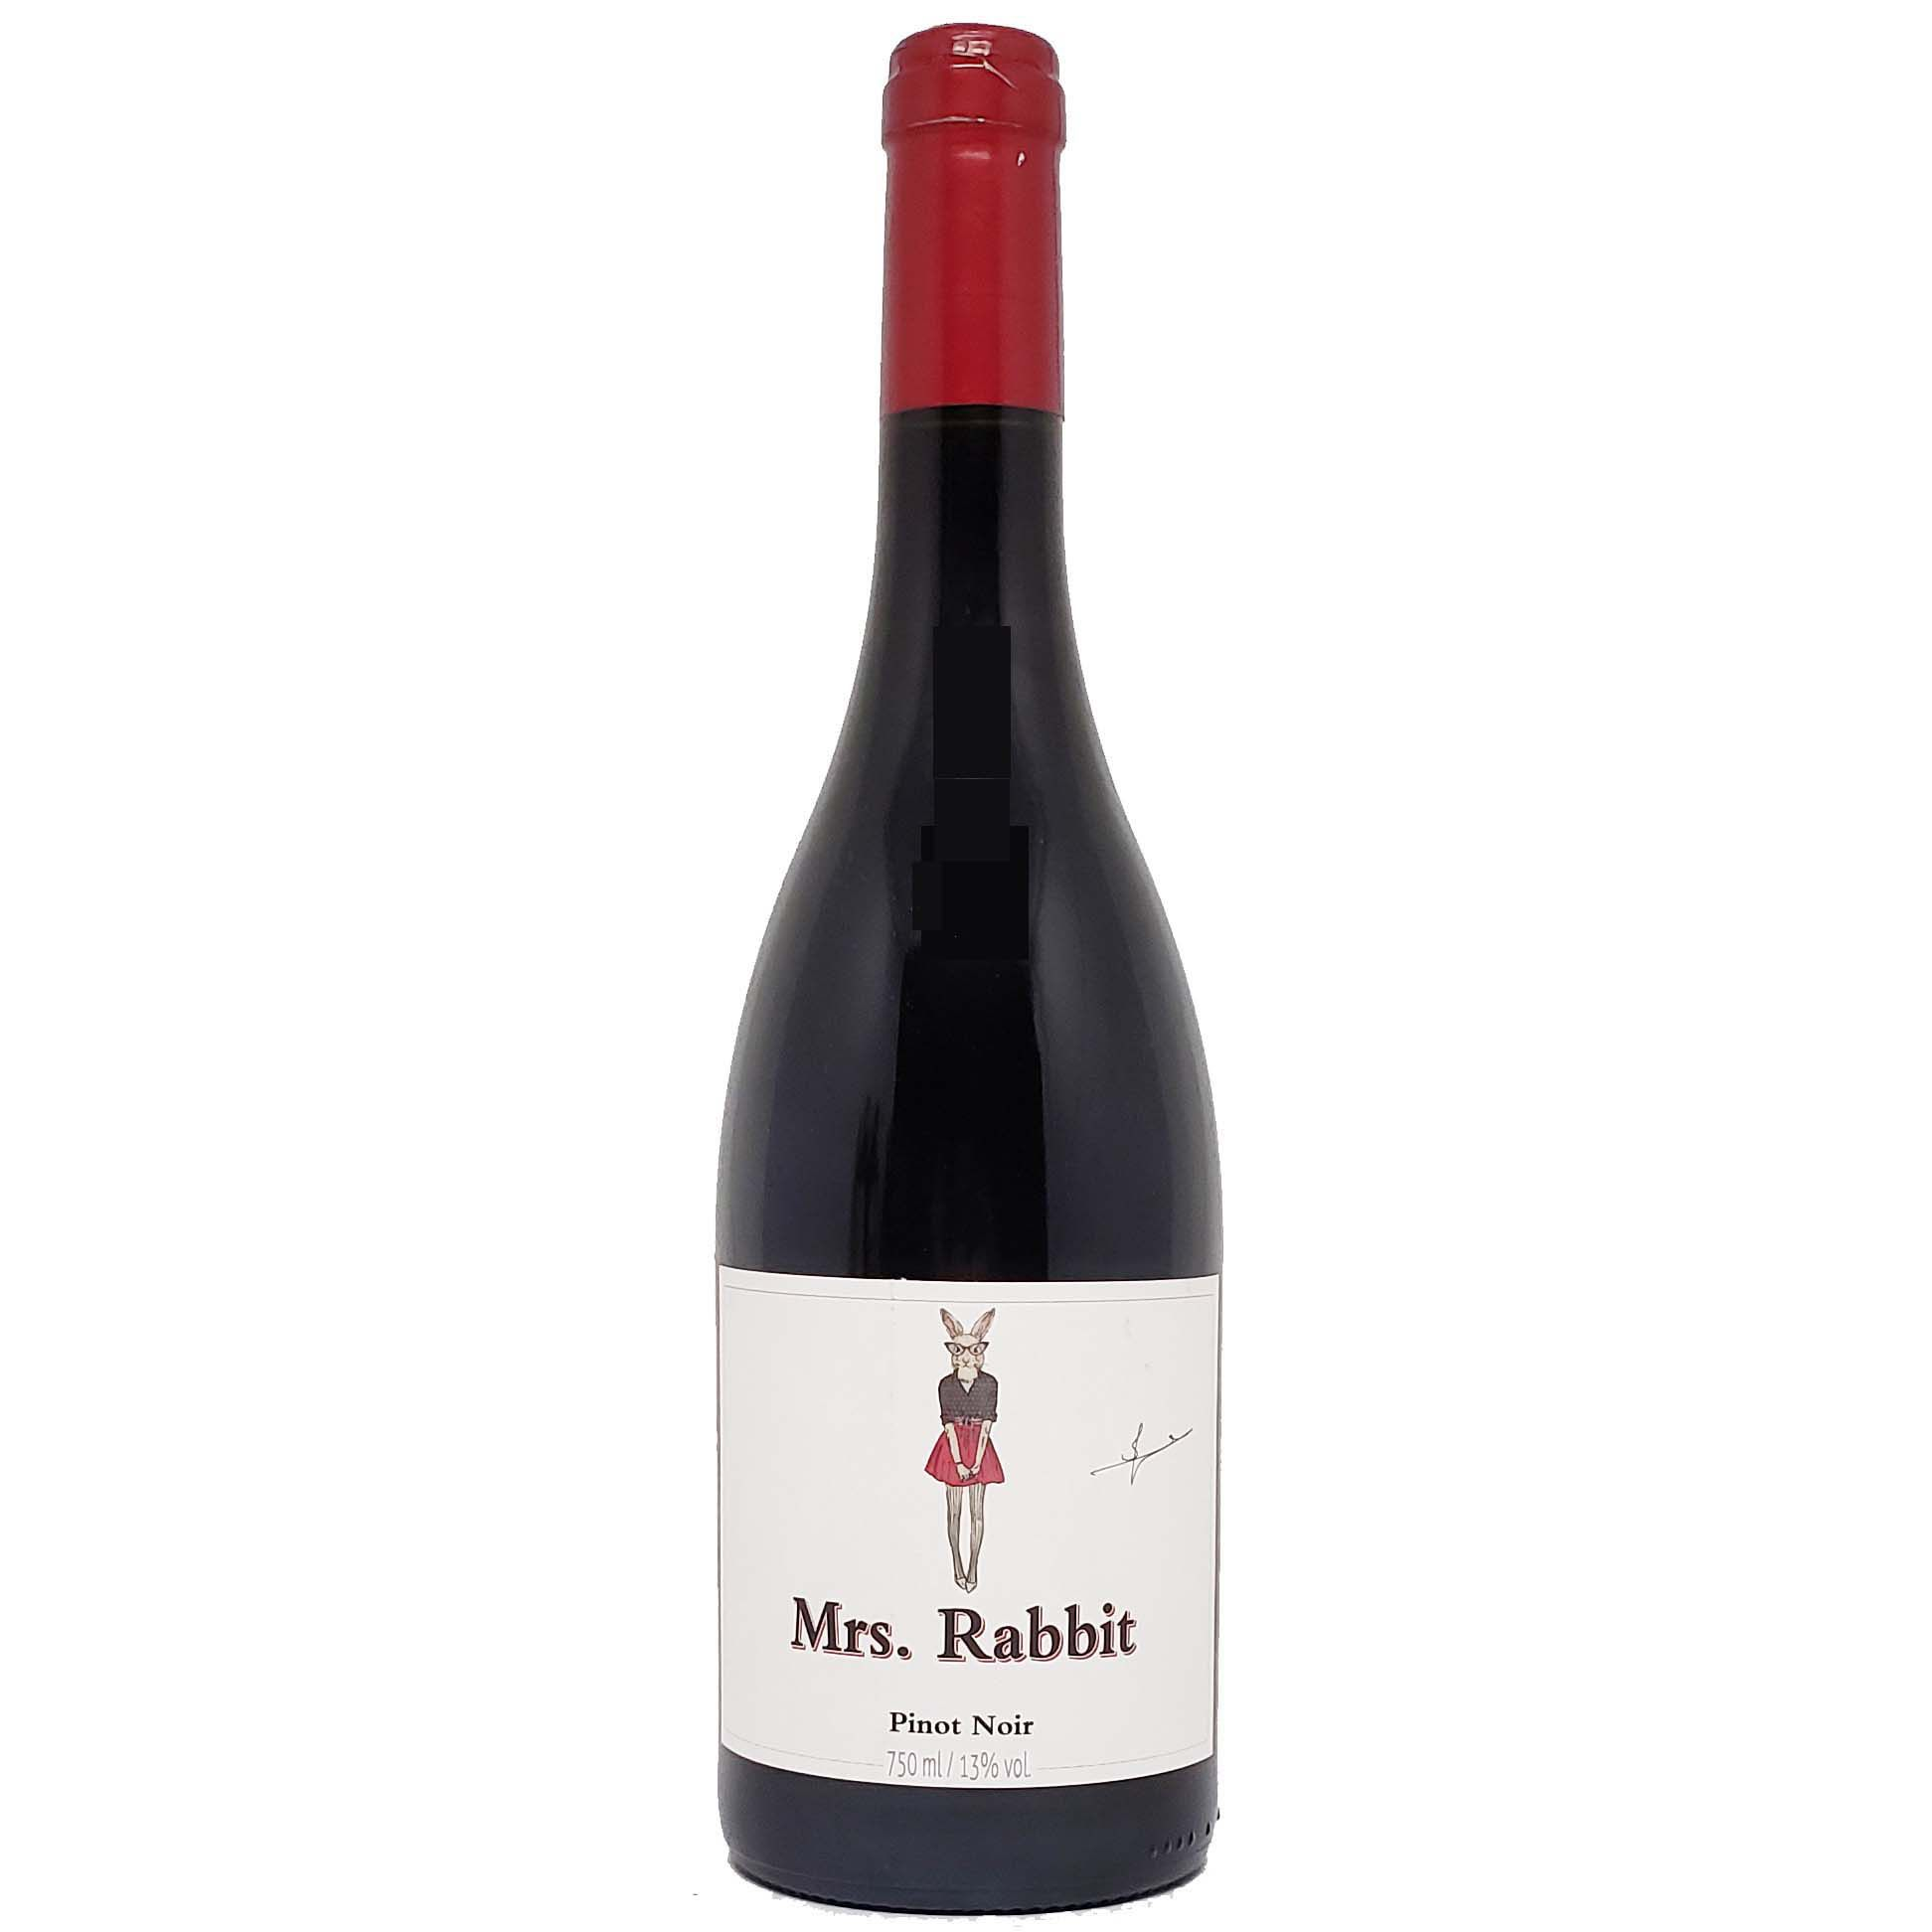 Vinho Tinto Mrs. Rabbit Pinot Noir - 750ml -